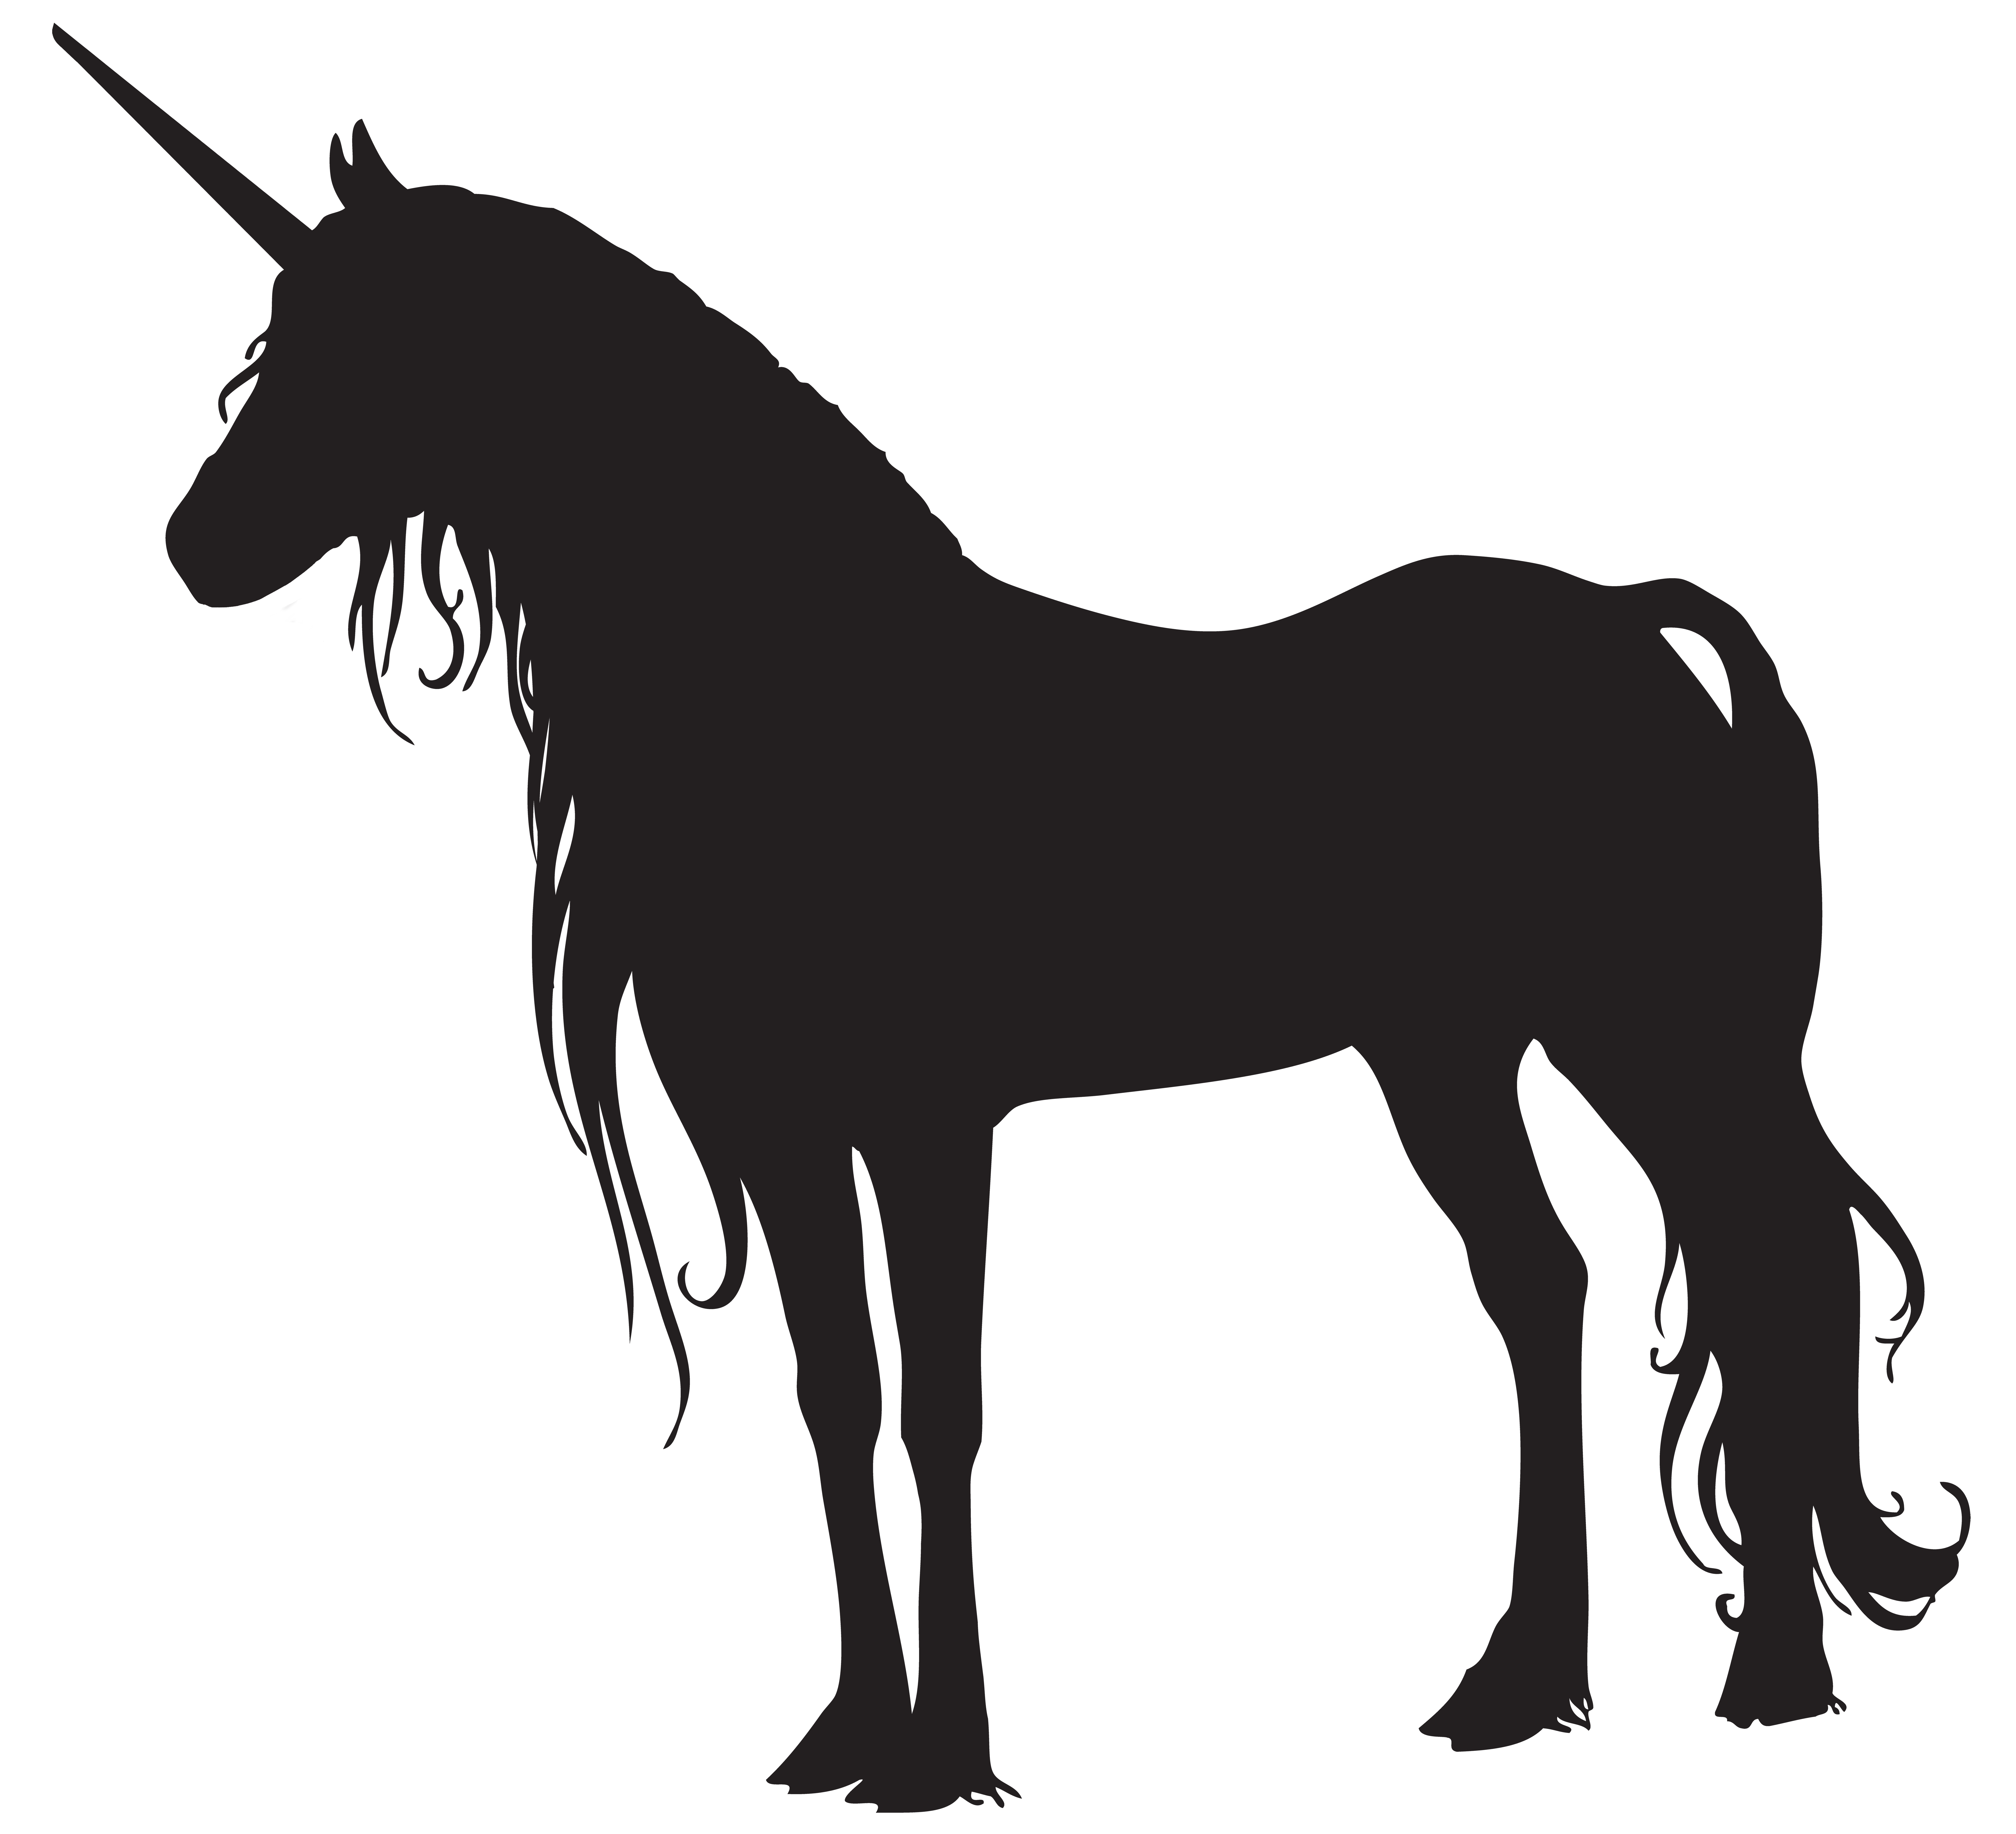 Unicorn silhouette png. Clip art gallery yopriceville